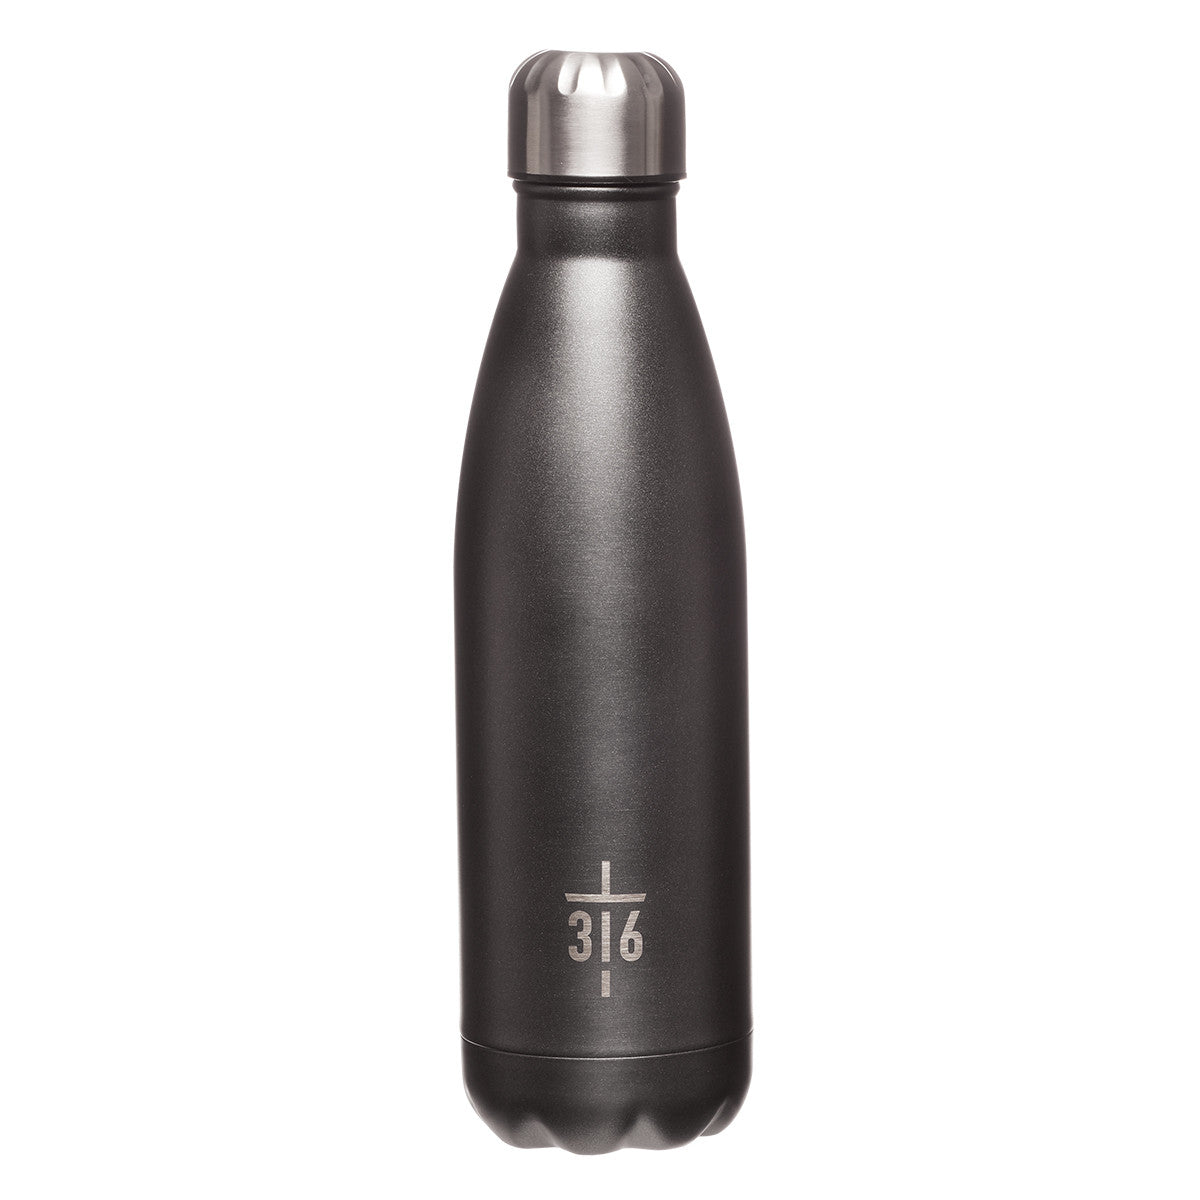 John 3:16 Stainless Steel Water Bottle